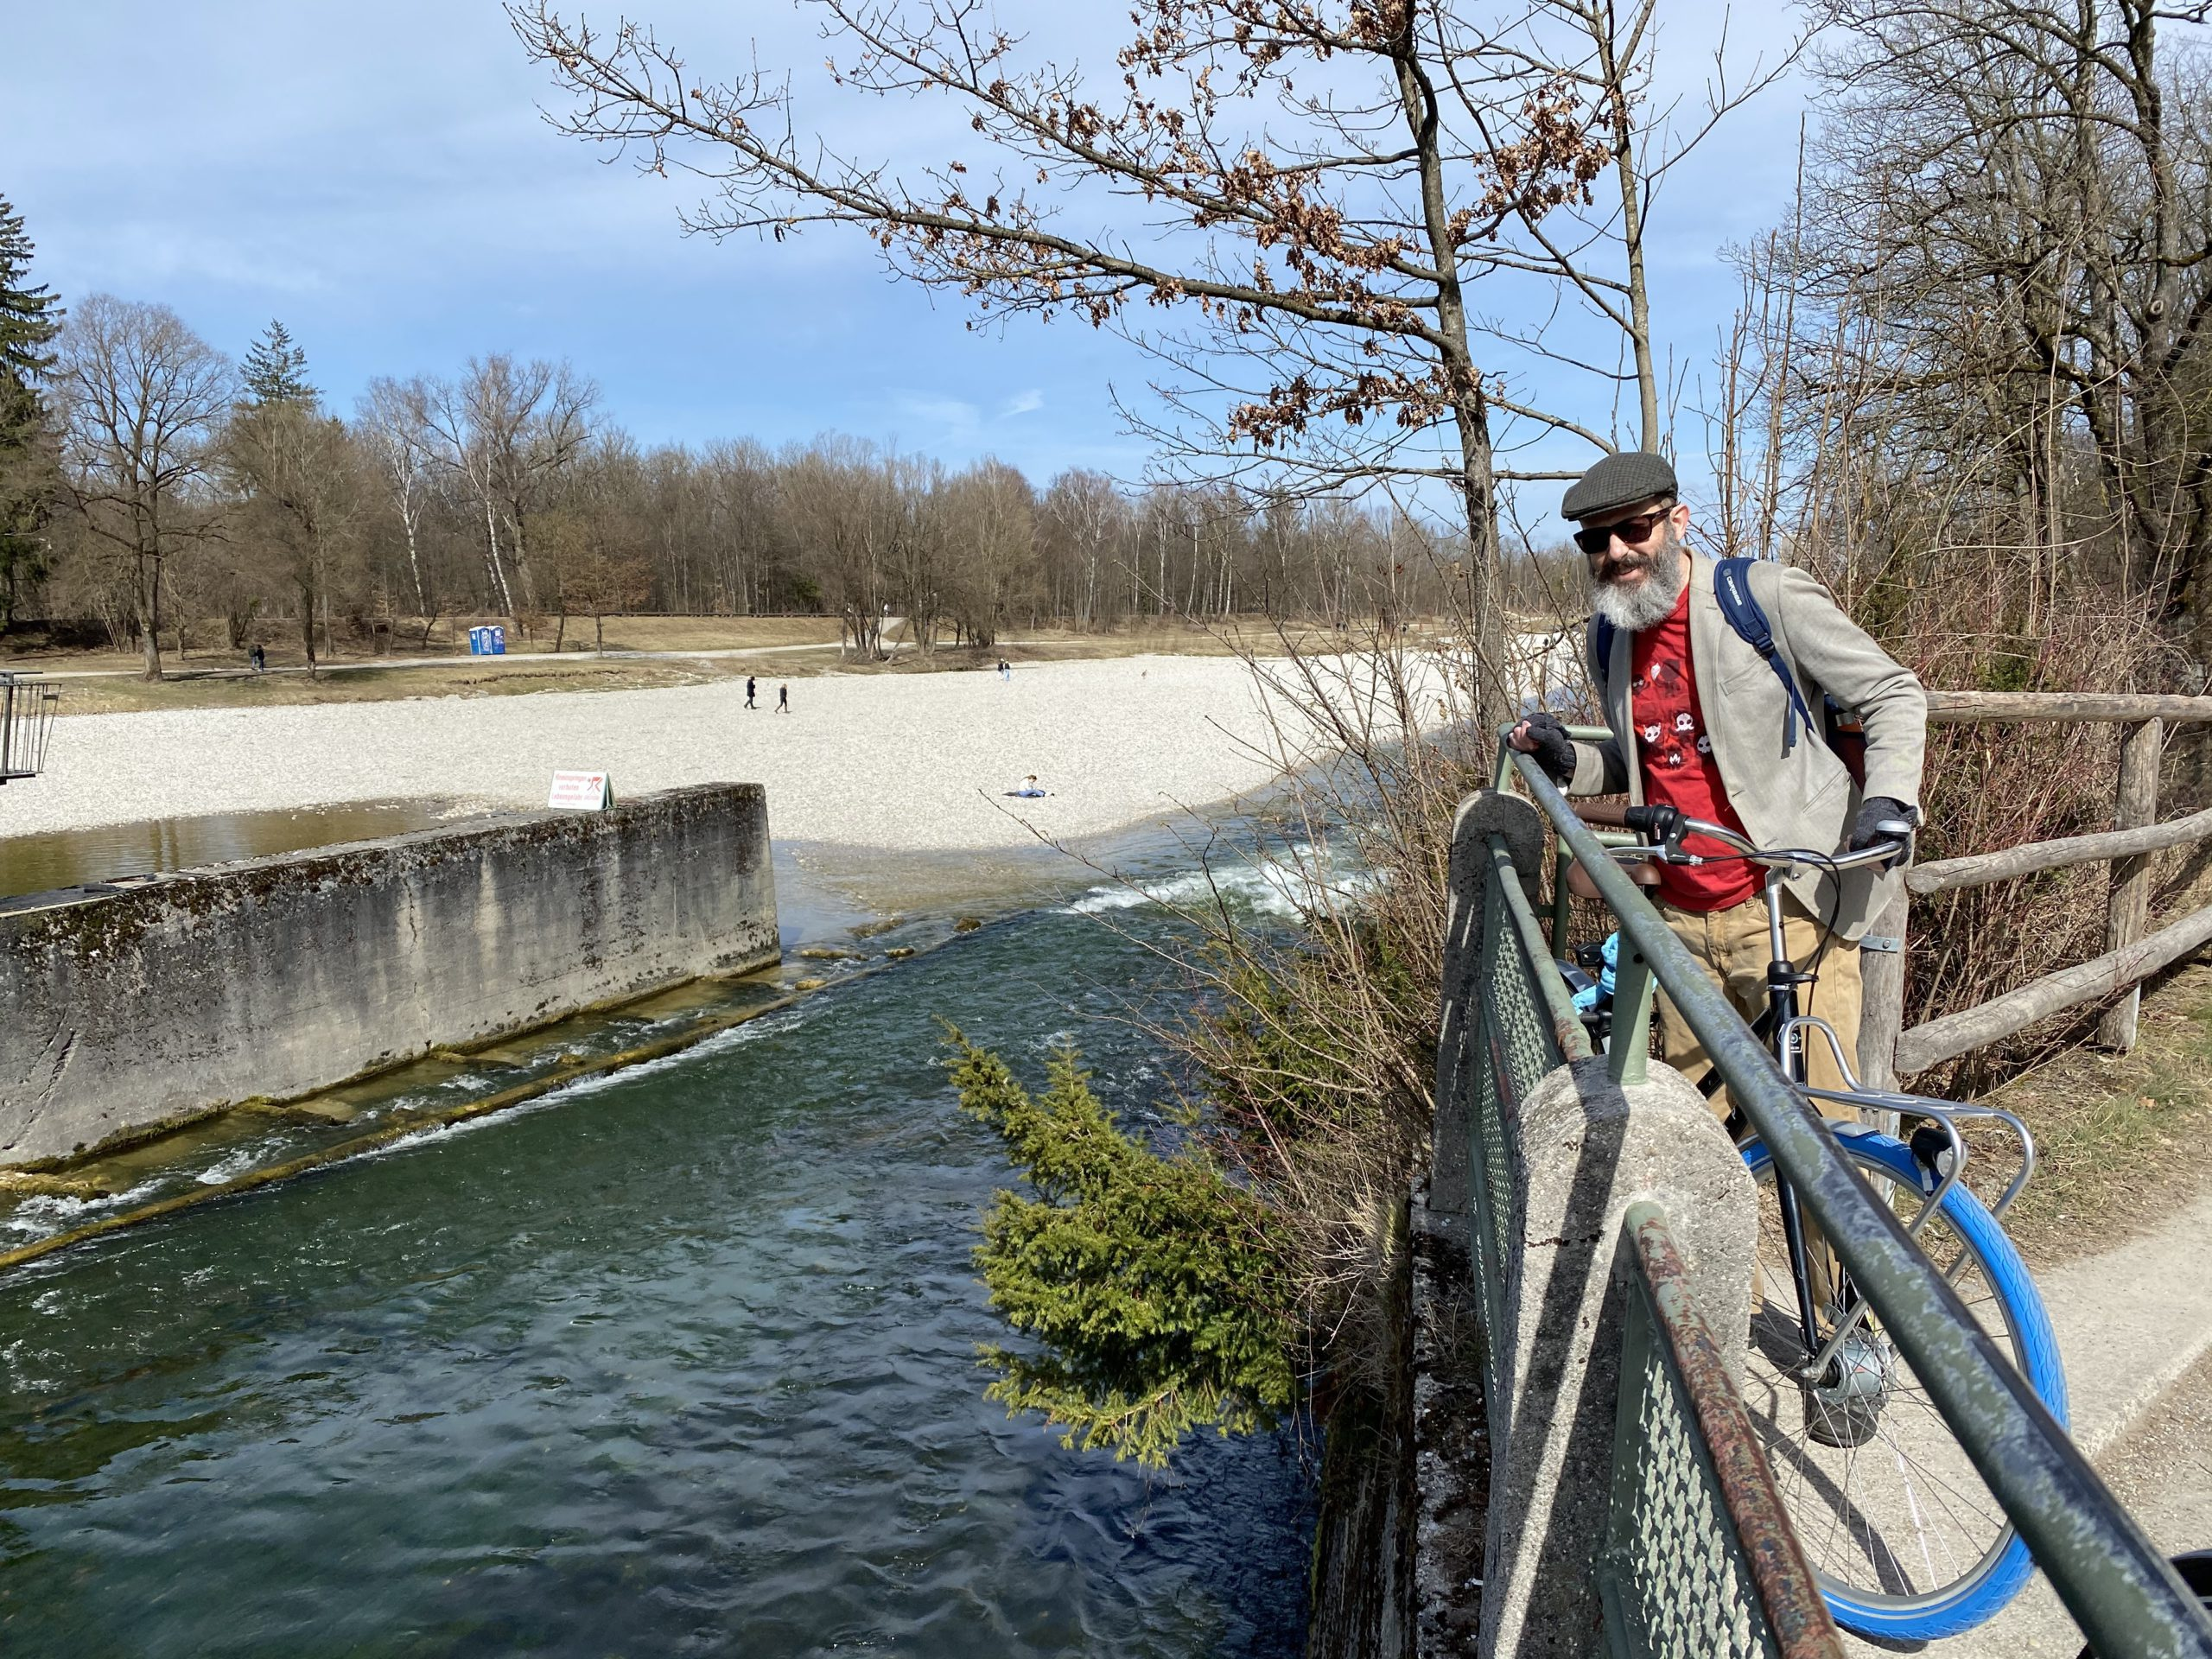 The Snook and the Isar